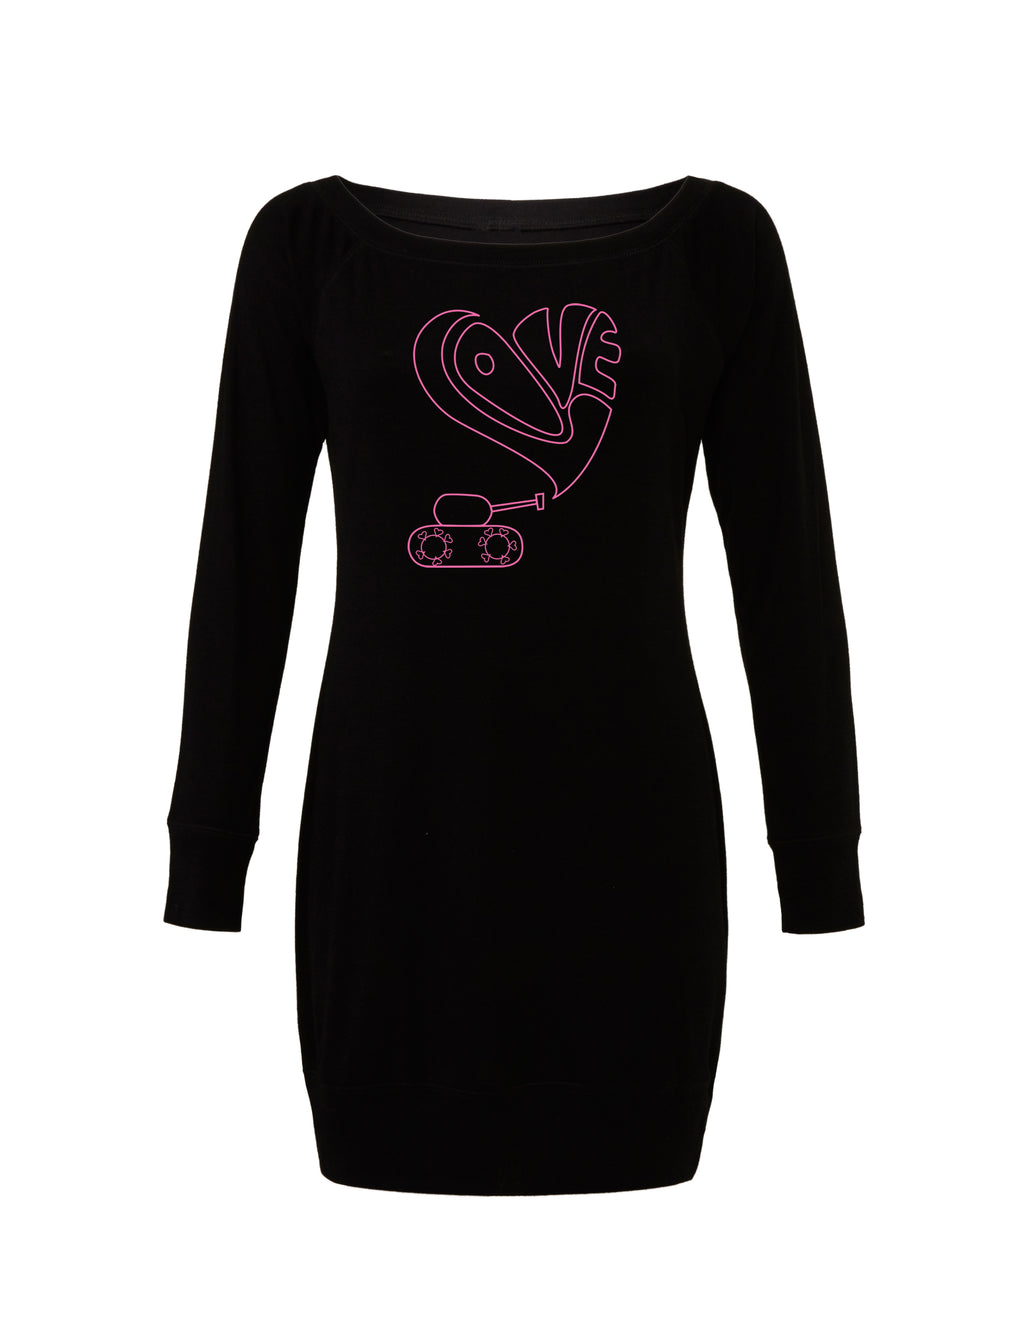 Black Lightweight Sweater Dress with pink love tank graphic for 55.00 at ARMY PINK